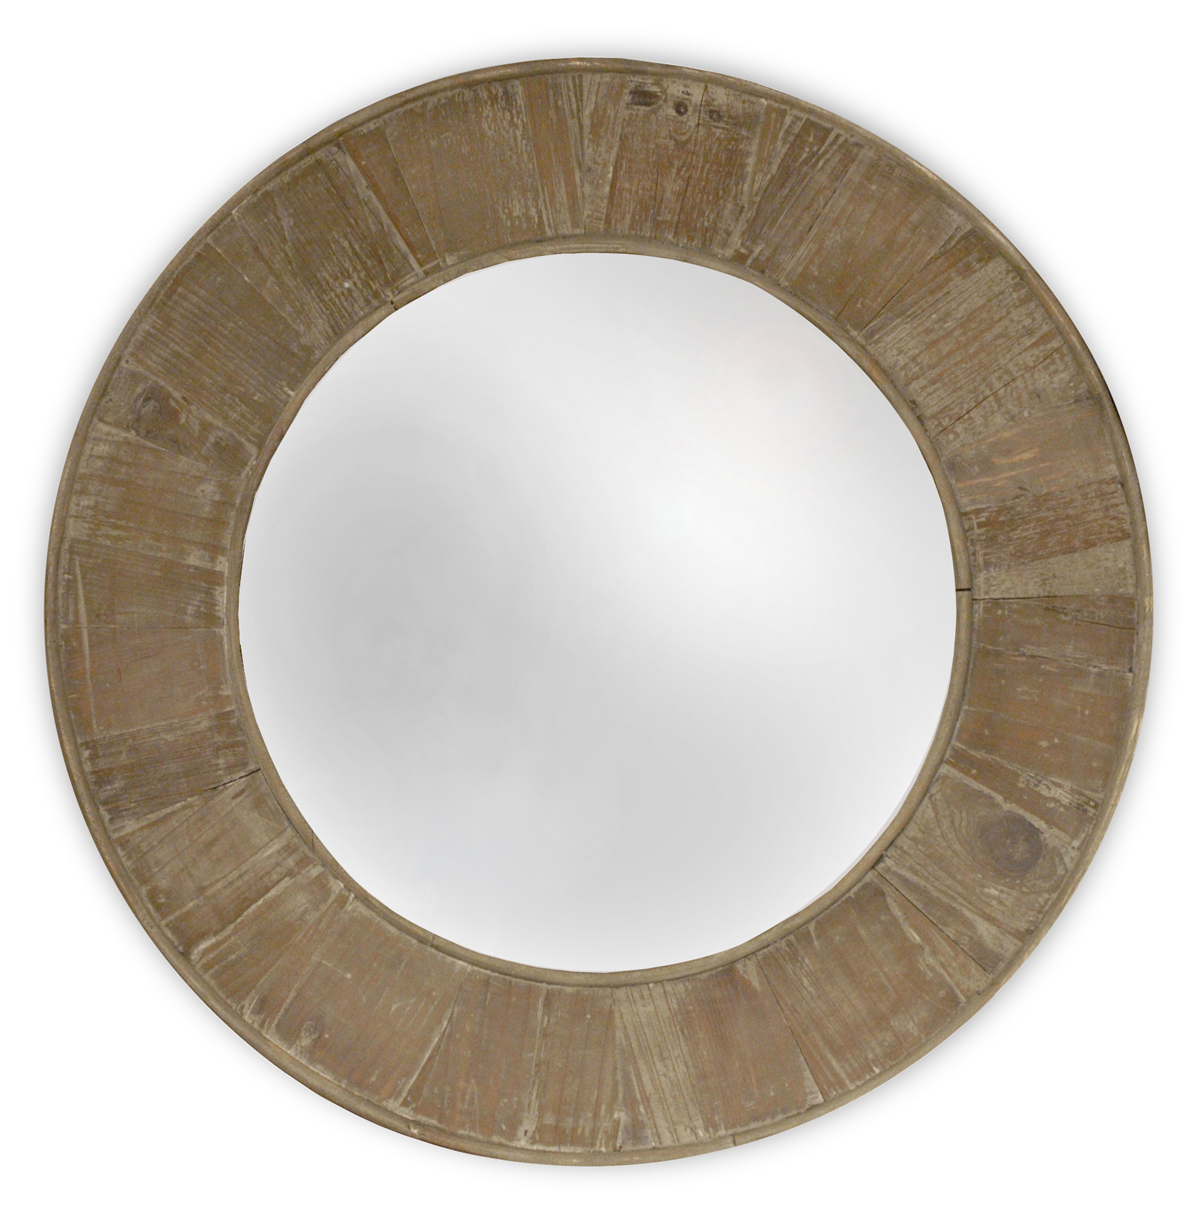 Boardwalk Rustic Lodge Old Lime Finish Reclaimed Pine Round Mirror